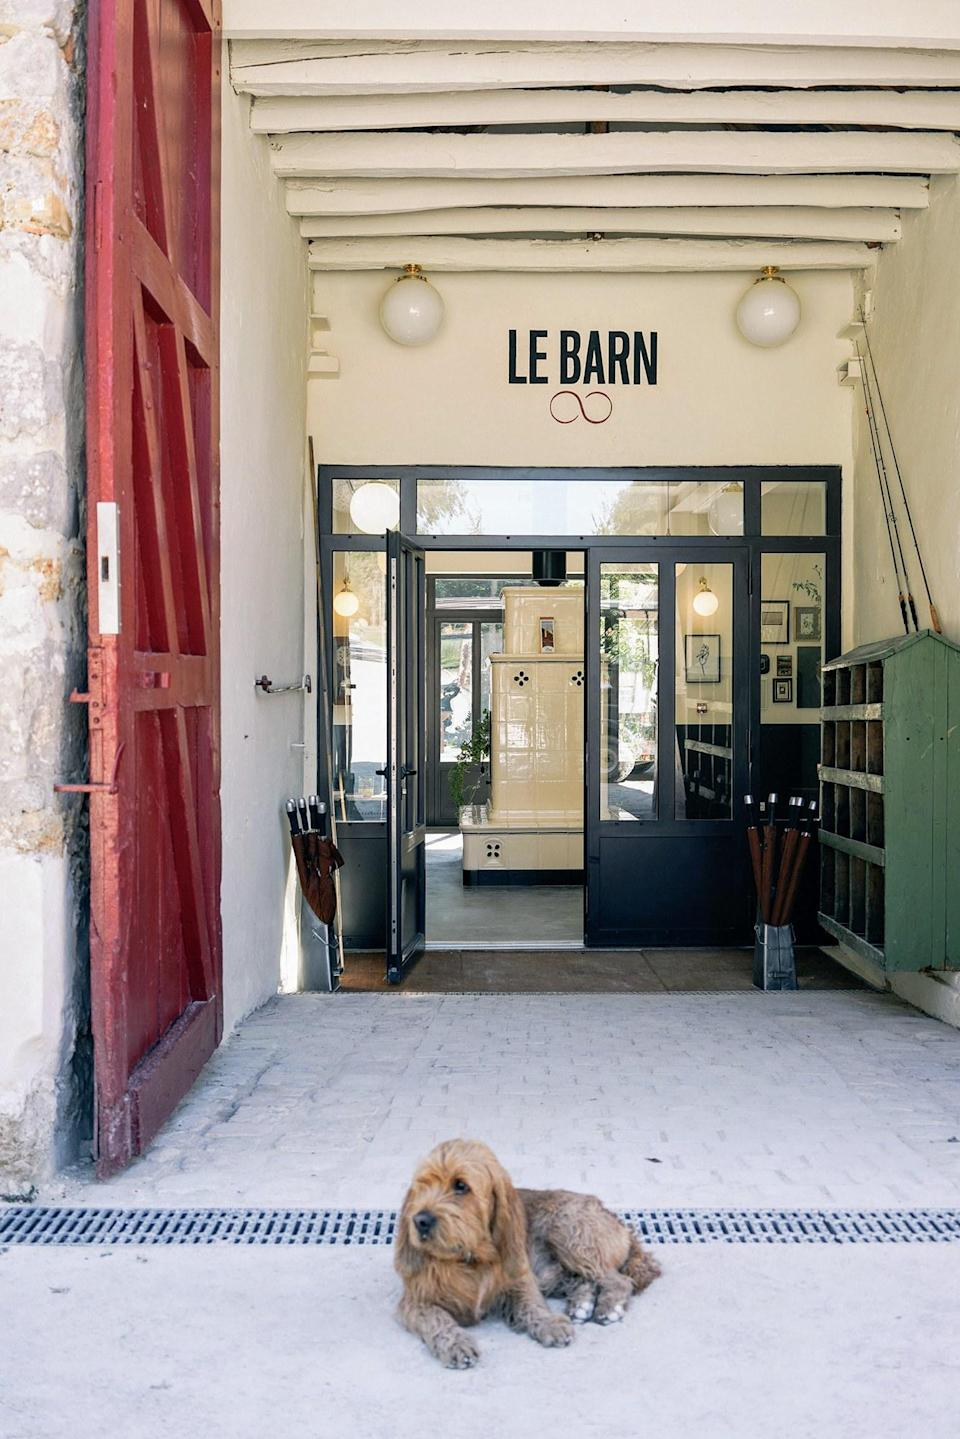 Le Barn is a French country retreat that yields to nature with a poetic informality evoking a chic summer camp.